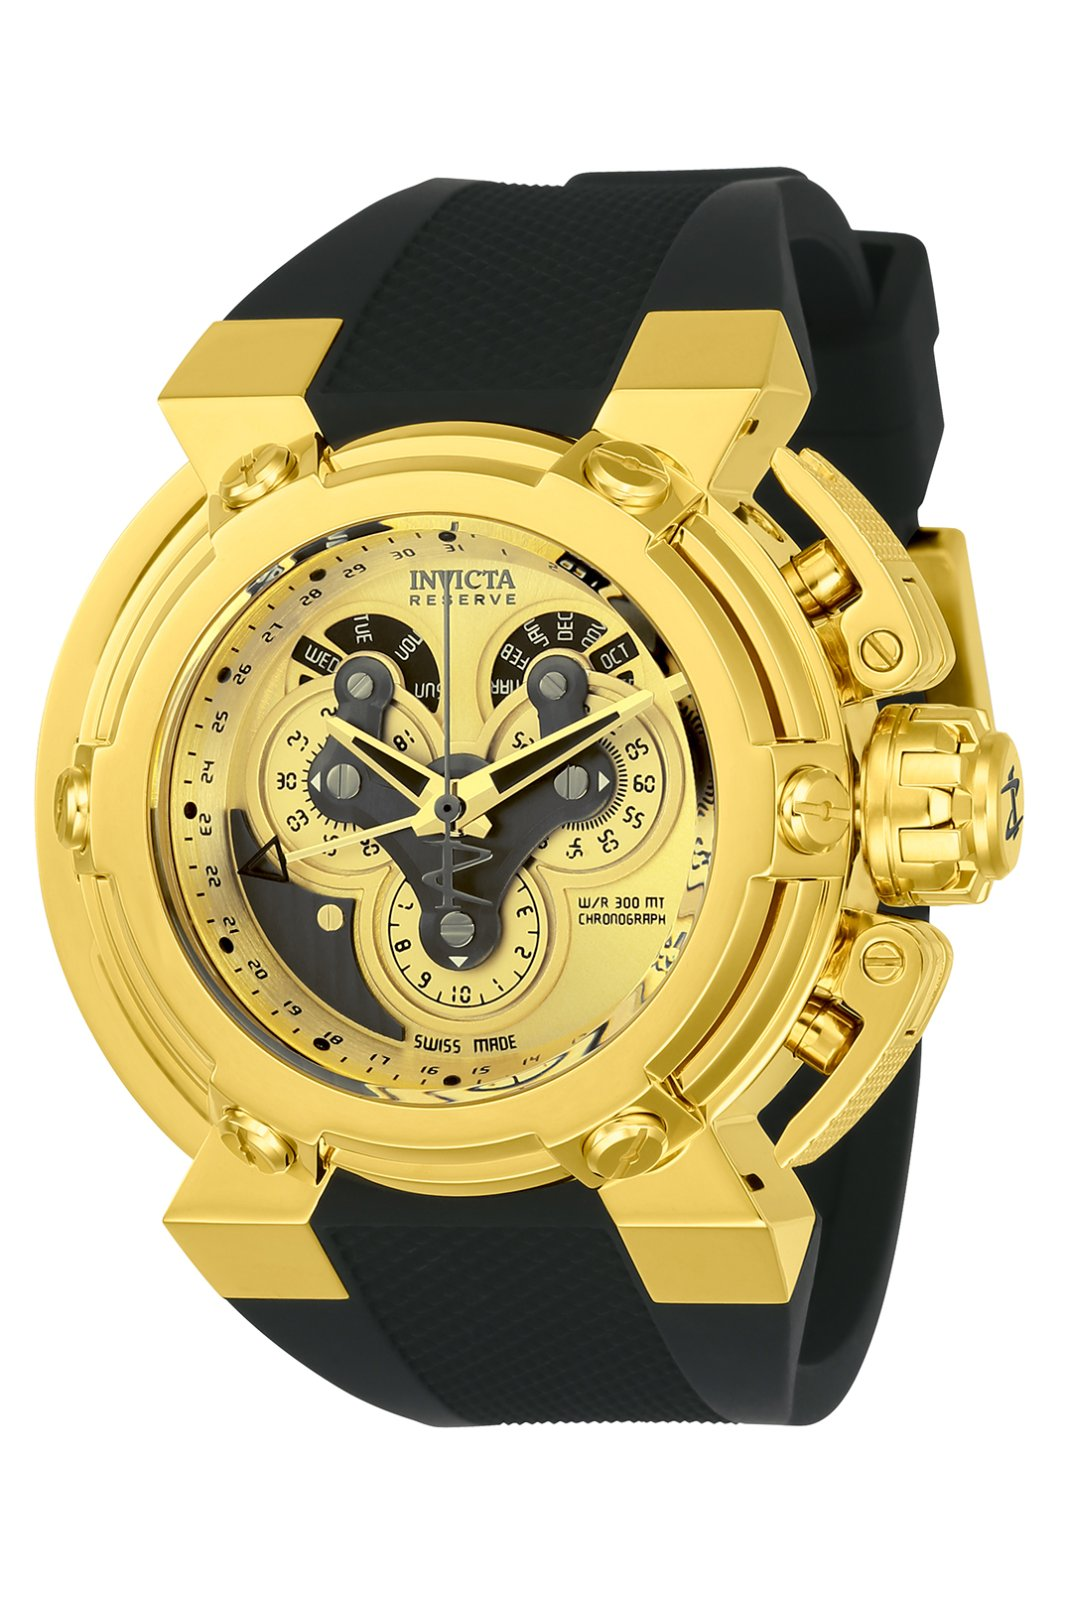 Invicta Reserve 21634 - Official Invicta Store - Buy Online! c775804a6e2